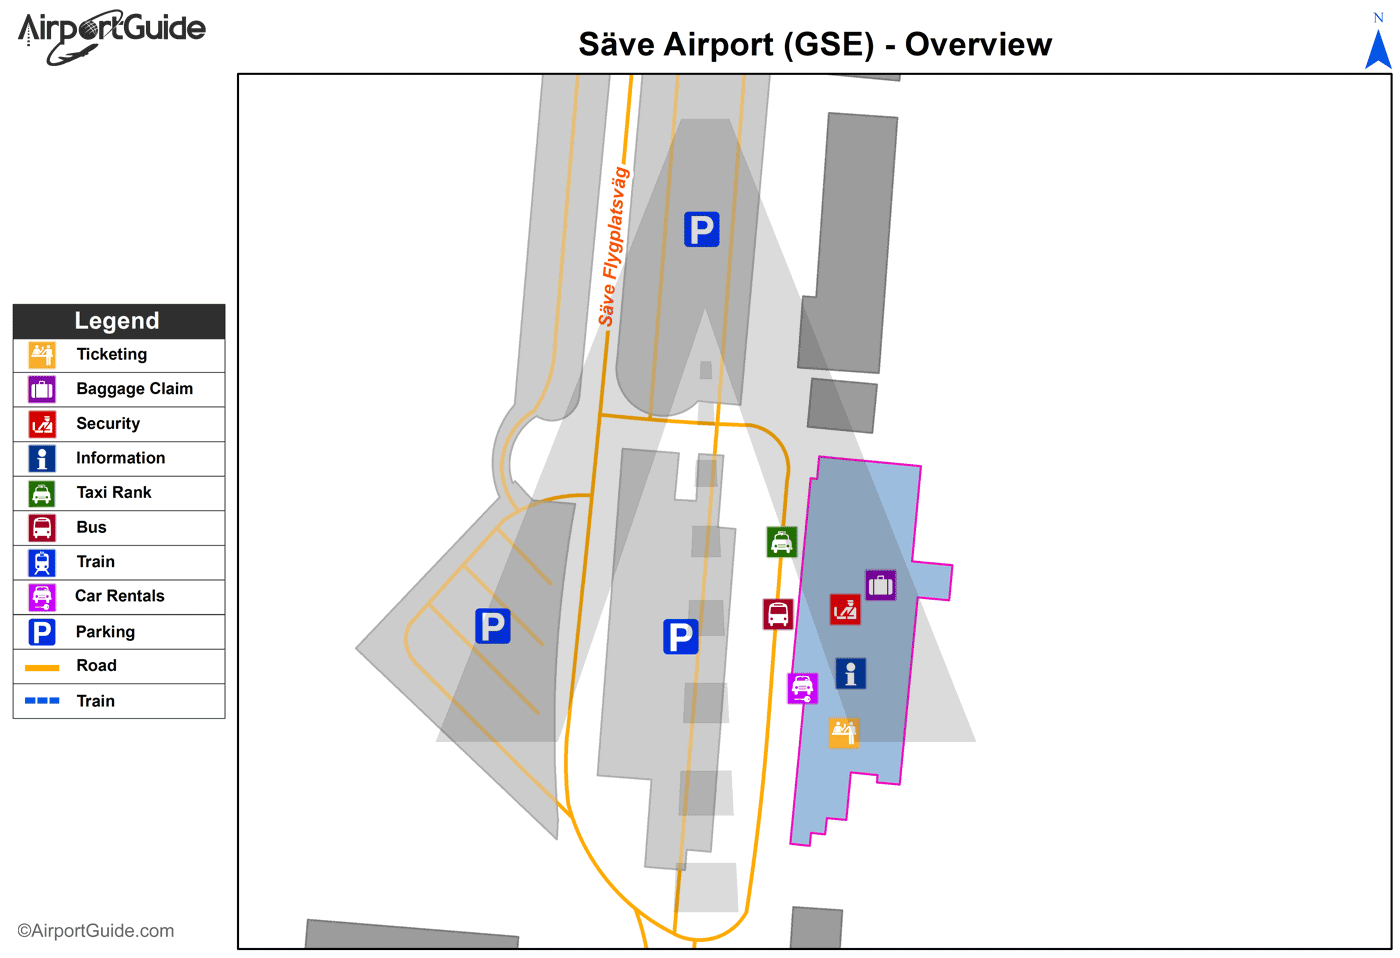 Gothenburg - Säve (GSE) Airport Terminal Map - Overview